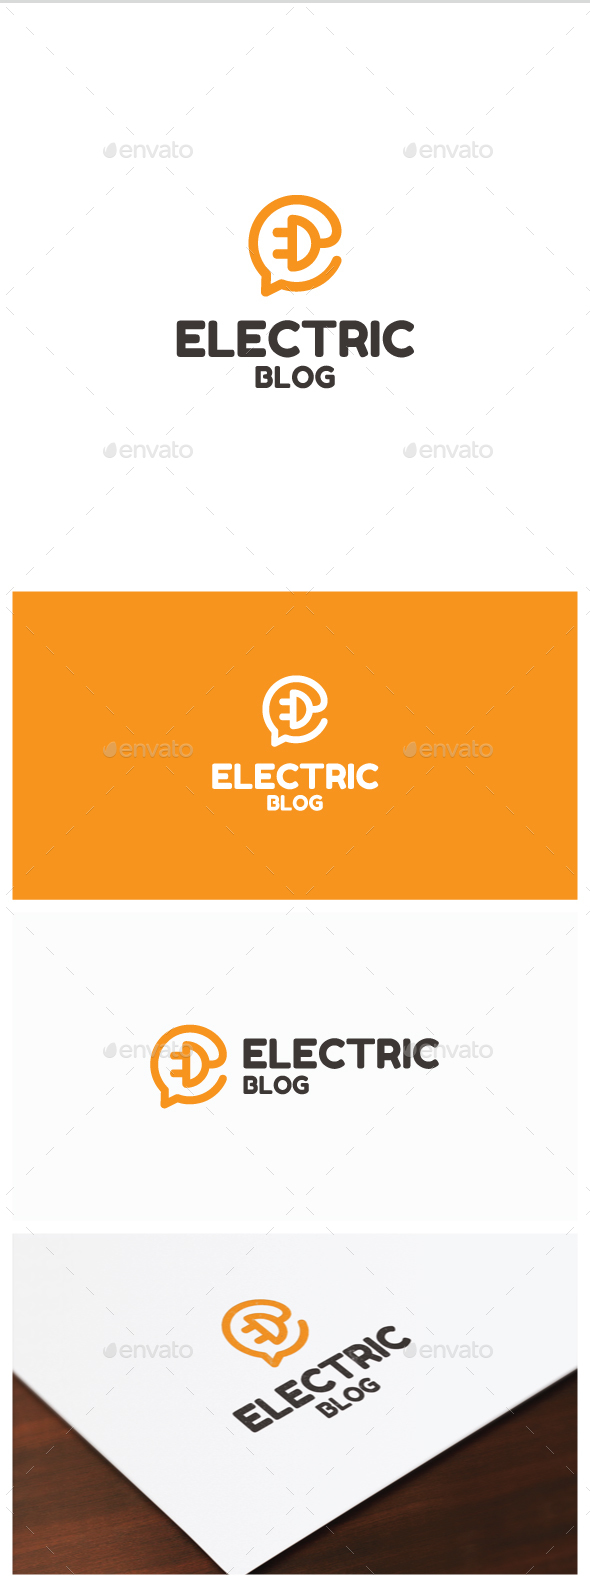 Electric Blogo Logo - Symbols Logo Templates